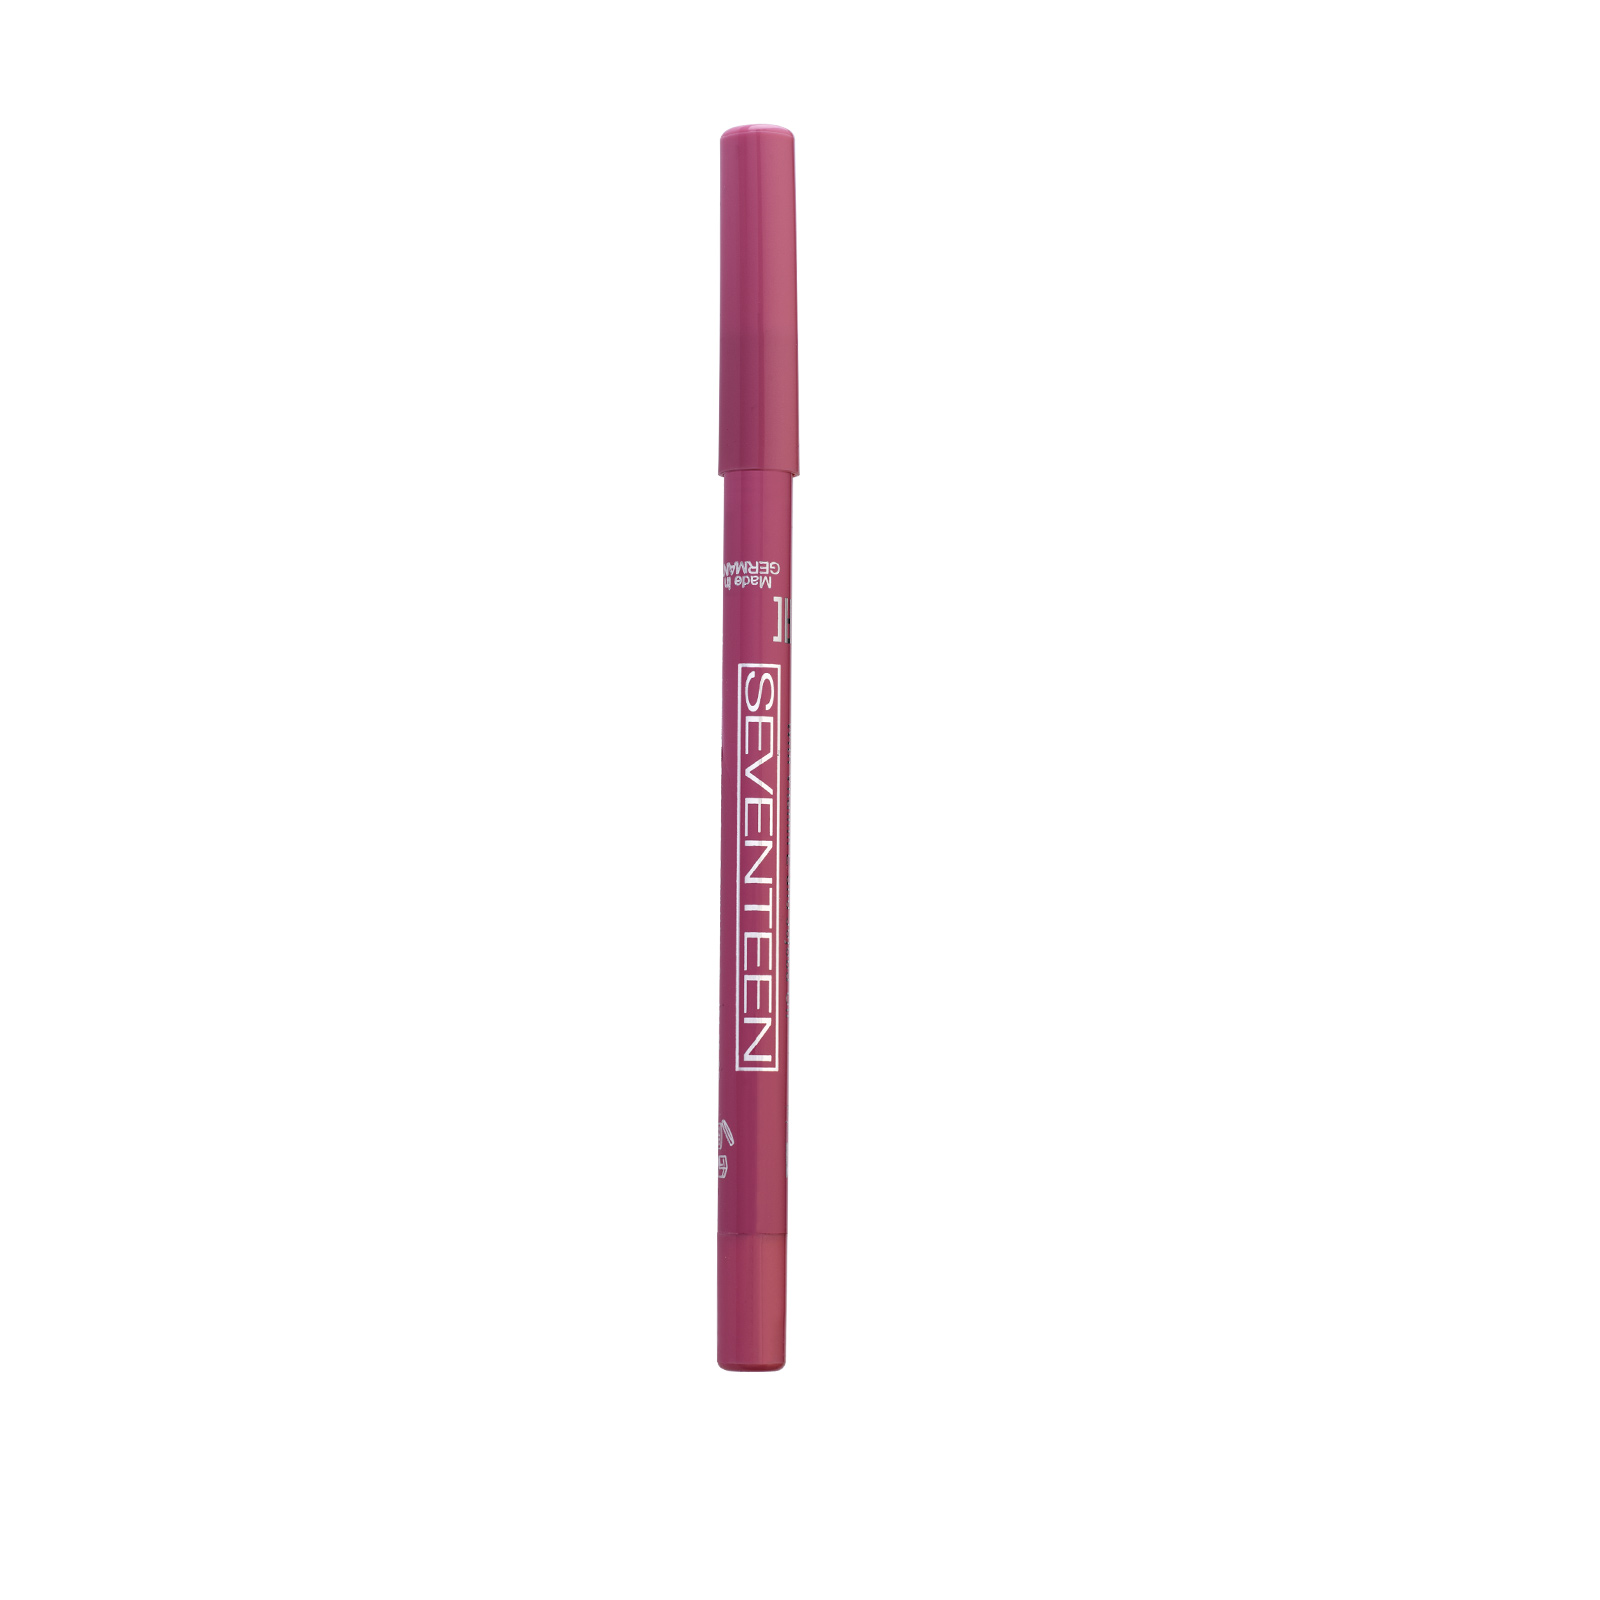 Supersmooth Waterproof Lipliner